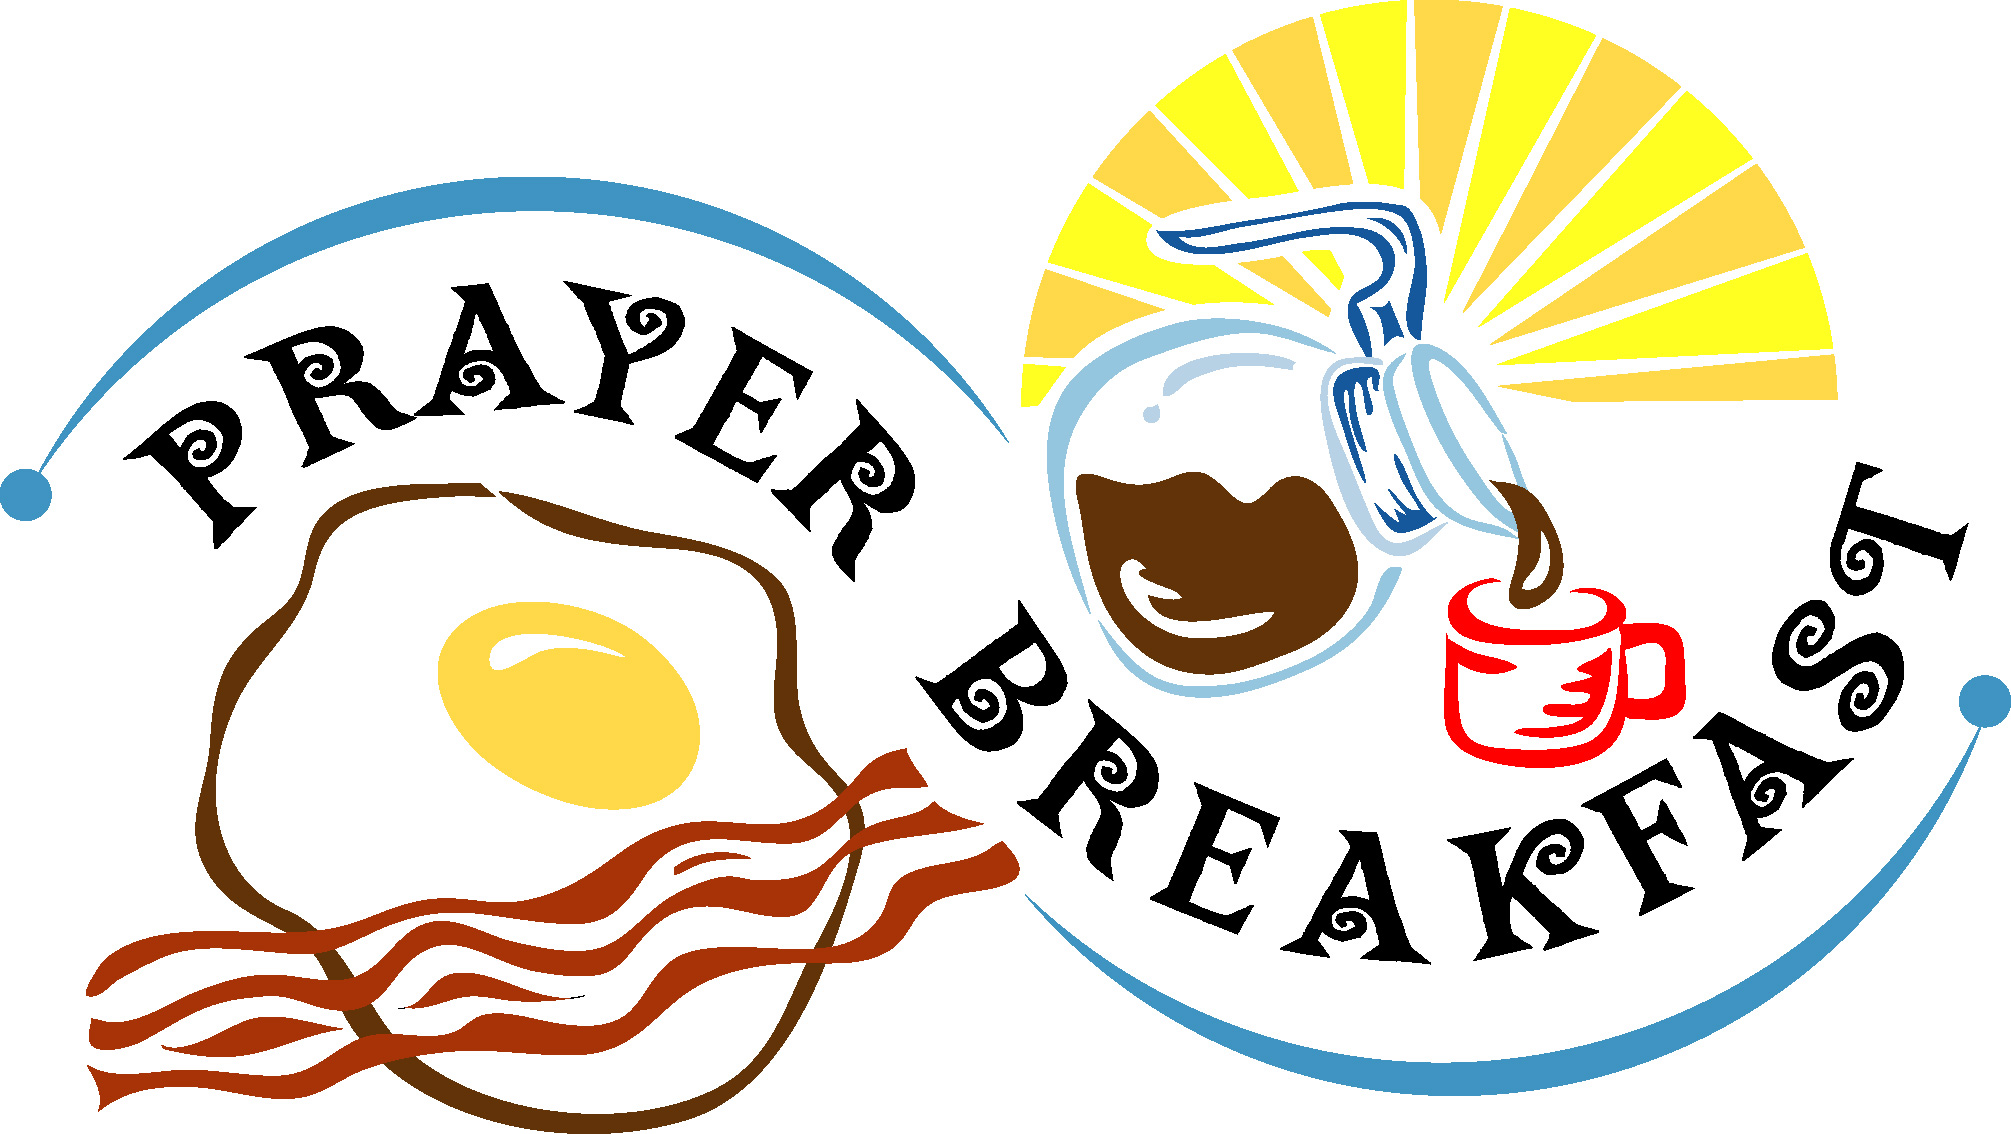 Prayer Breakfast Clipart - Clipart Kid